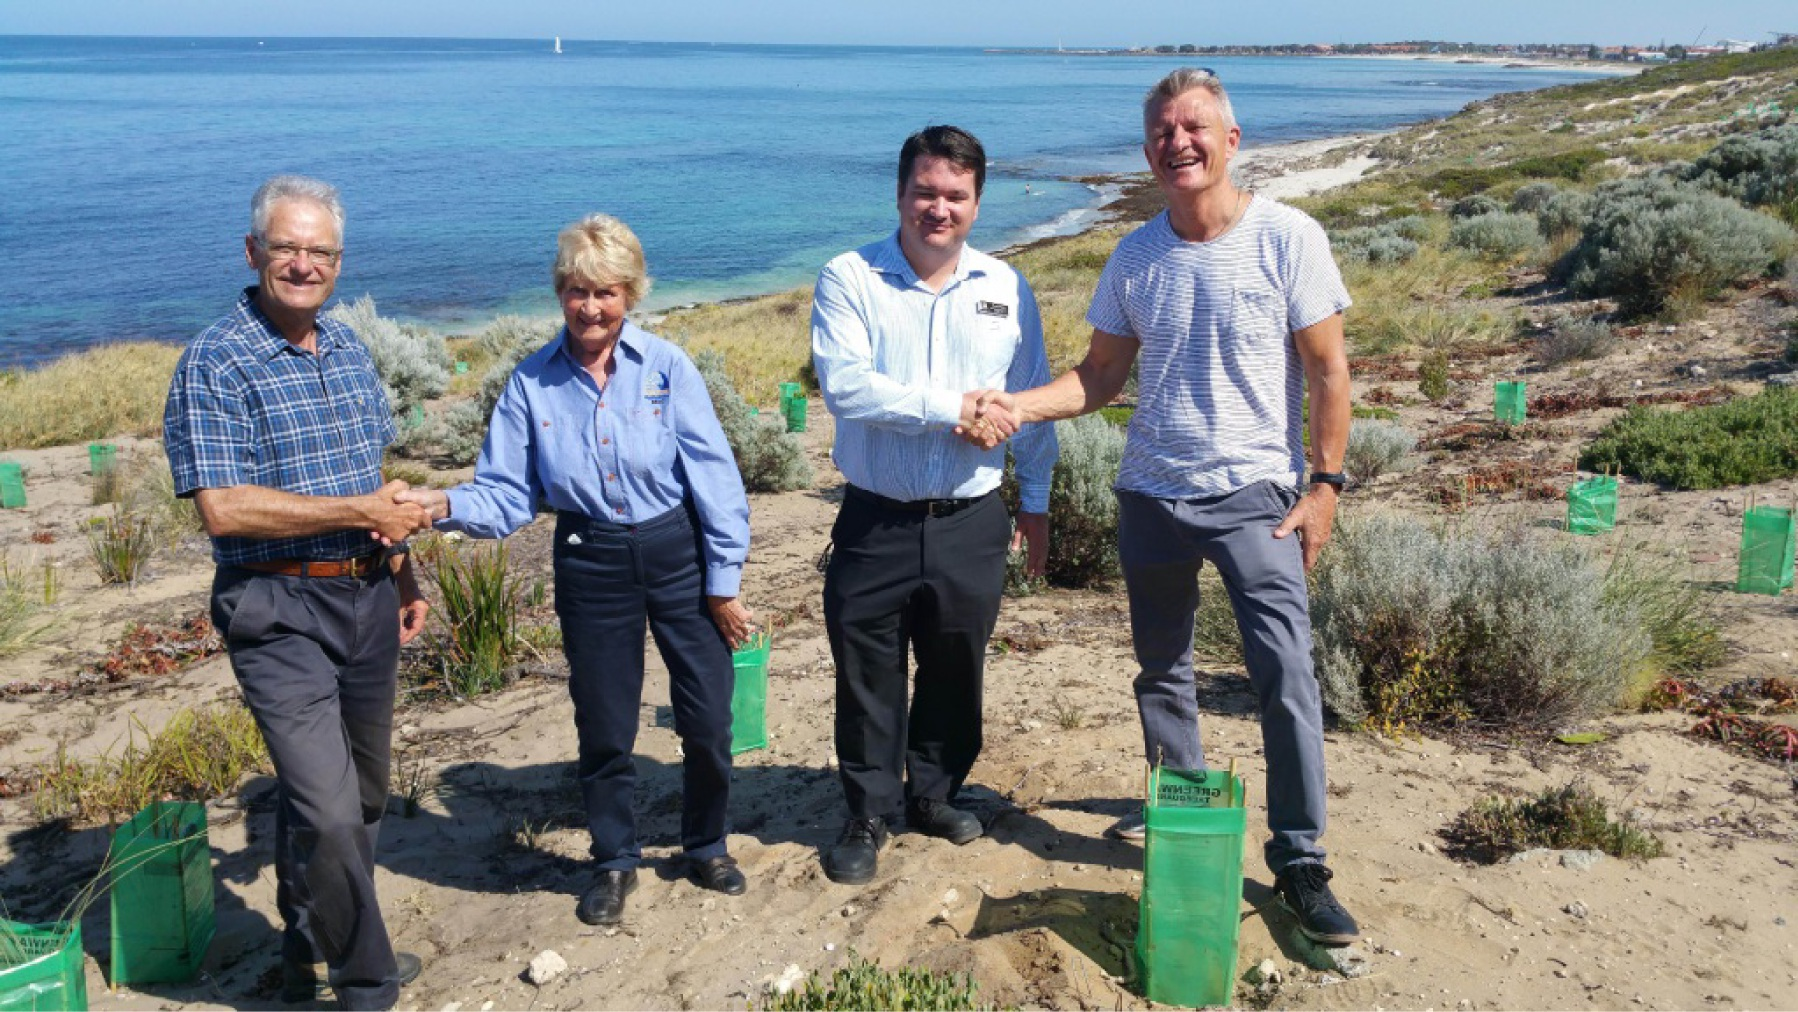 Councillor Mike Norman, Stirling Natural Areas Coastcare's Rae Kolb, Stirling environment officer Murray Woods and Joondalup natural areas manager Keith Armstrong.